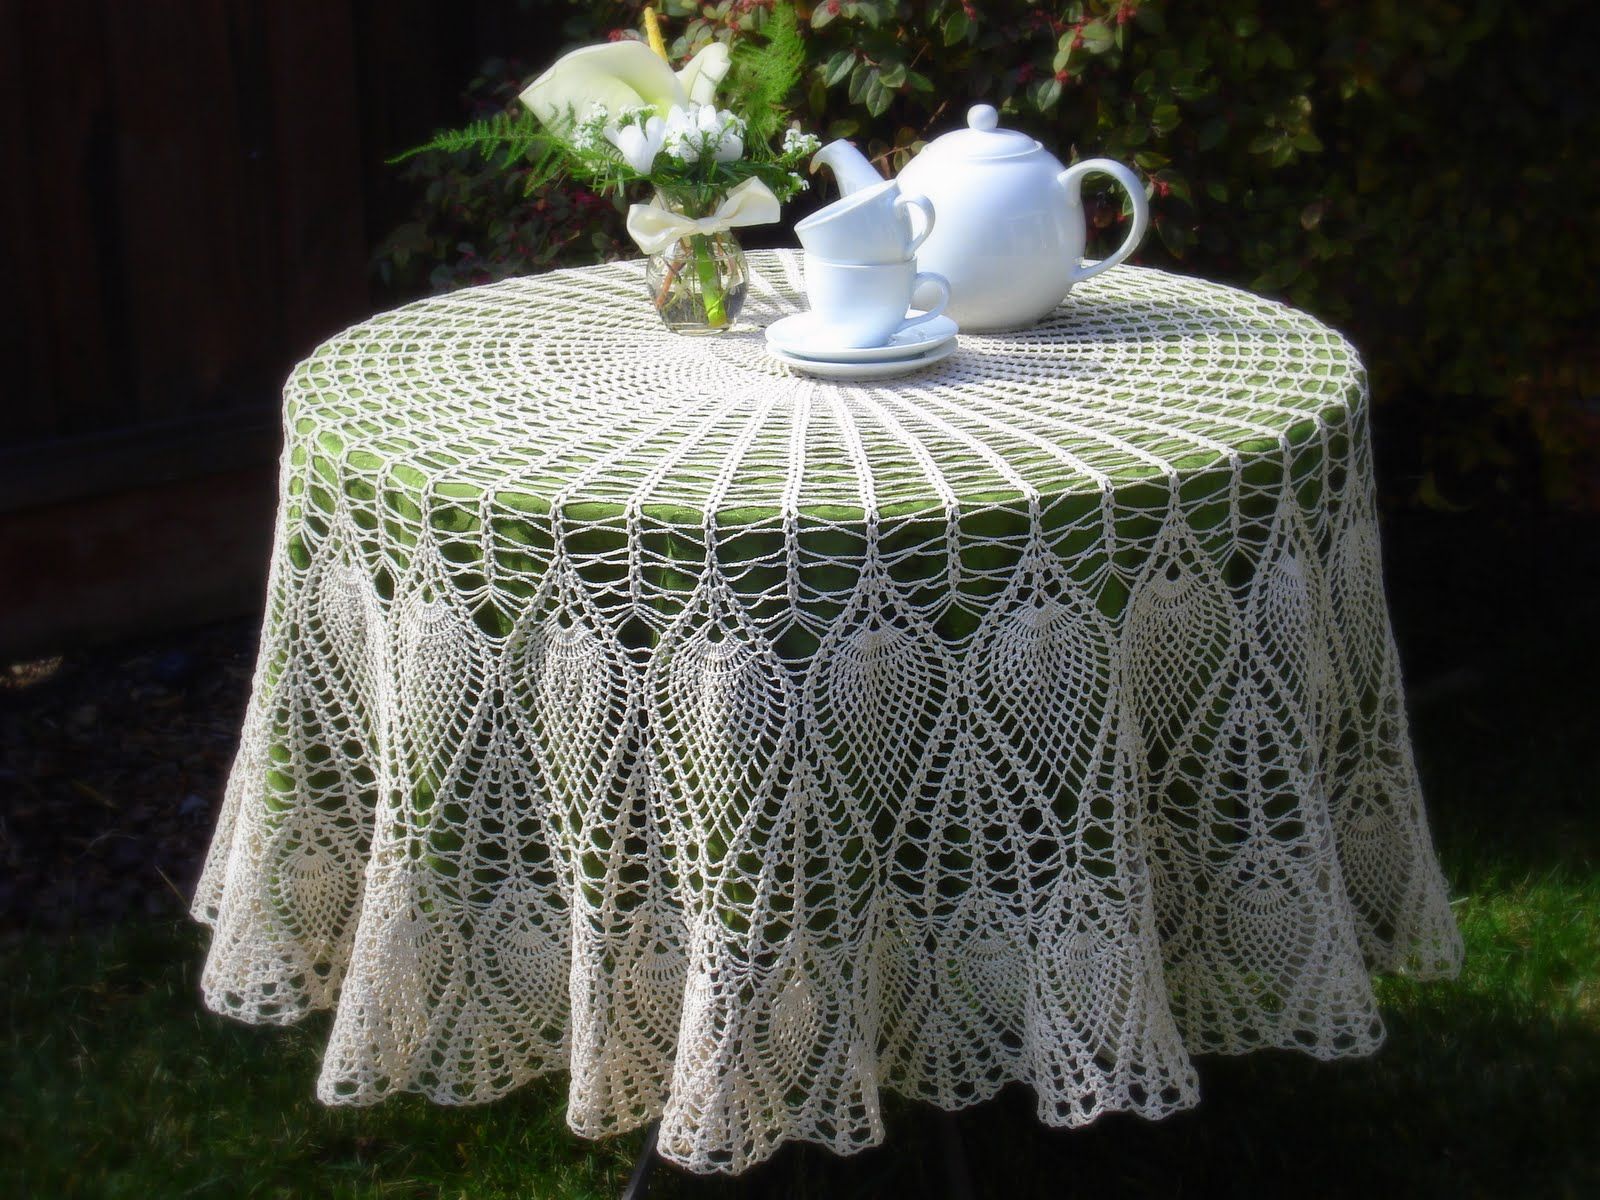 Free Easy Crochet Tablecloth Patterns For Beginners : PINEAPPLE CROCHET TABLECLOTH PATTERN ? Crochet For Beginners